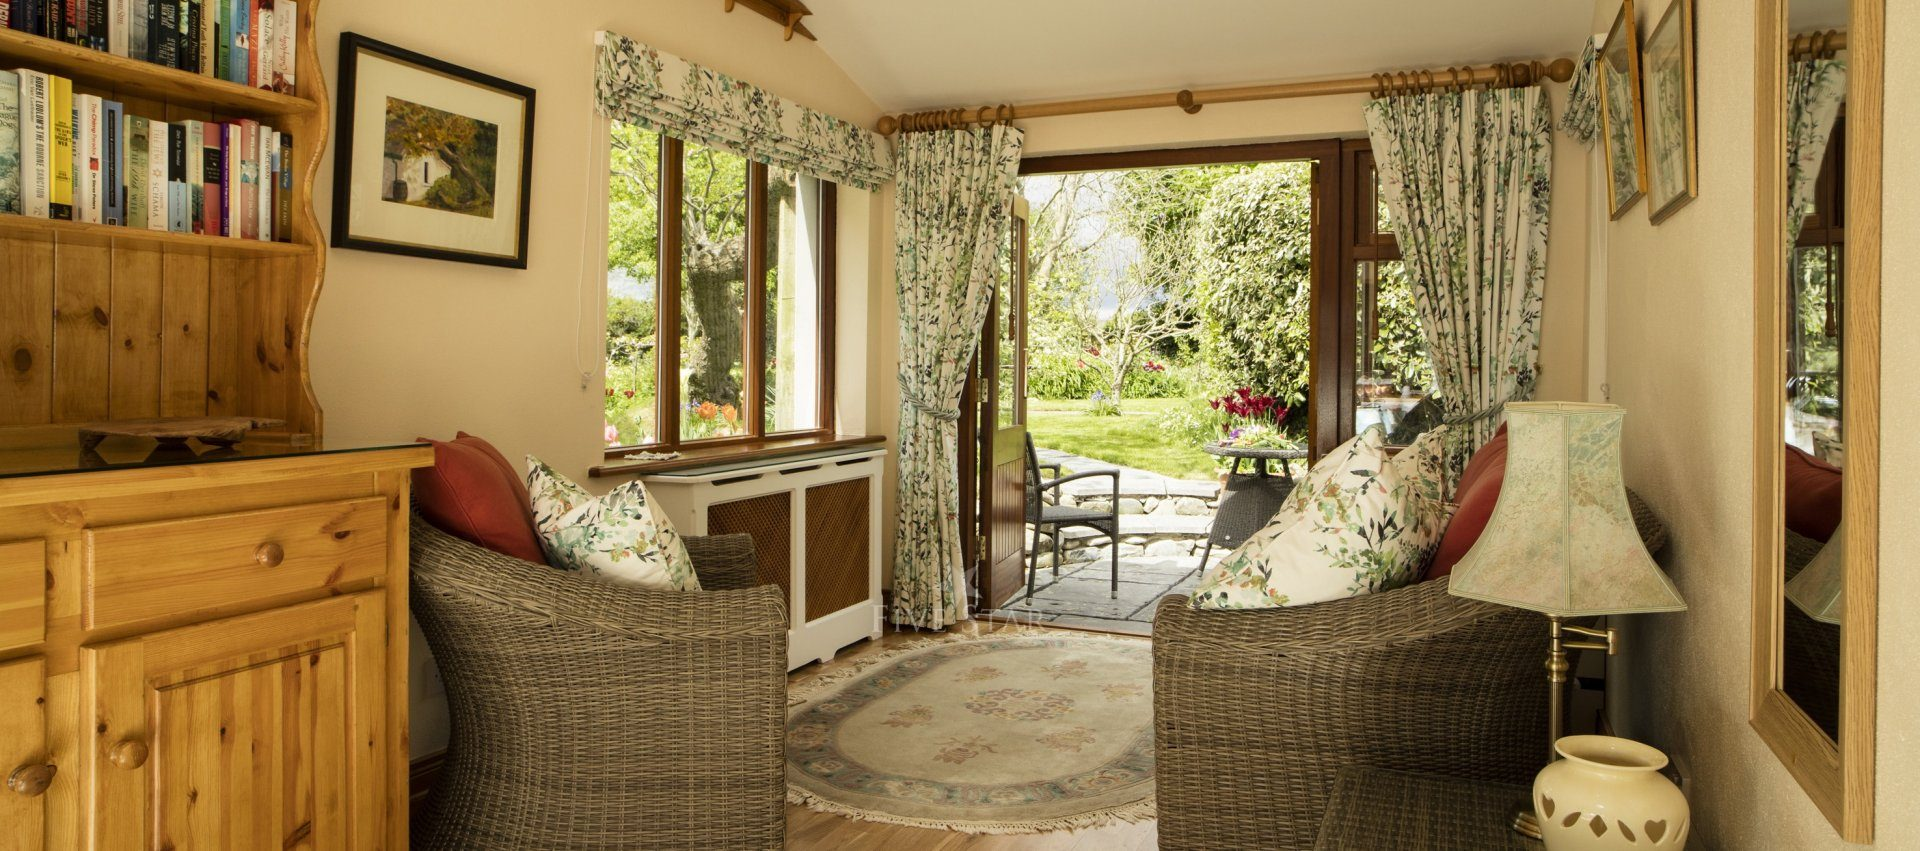 Honeymoon Cottage ~ Garden room with doubles doors out to terrace.